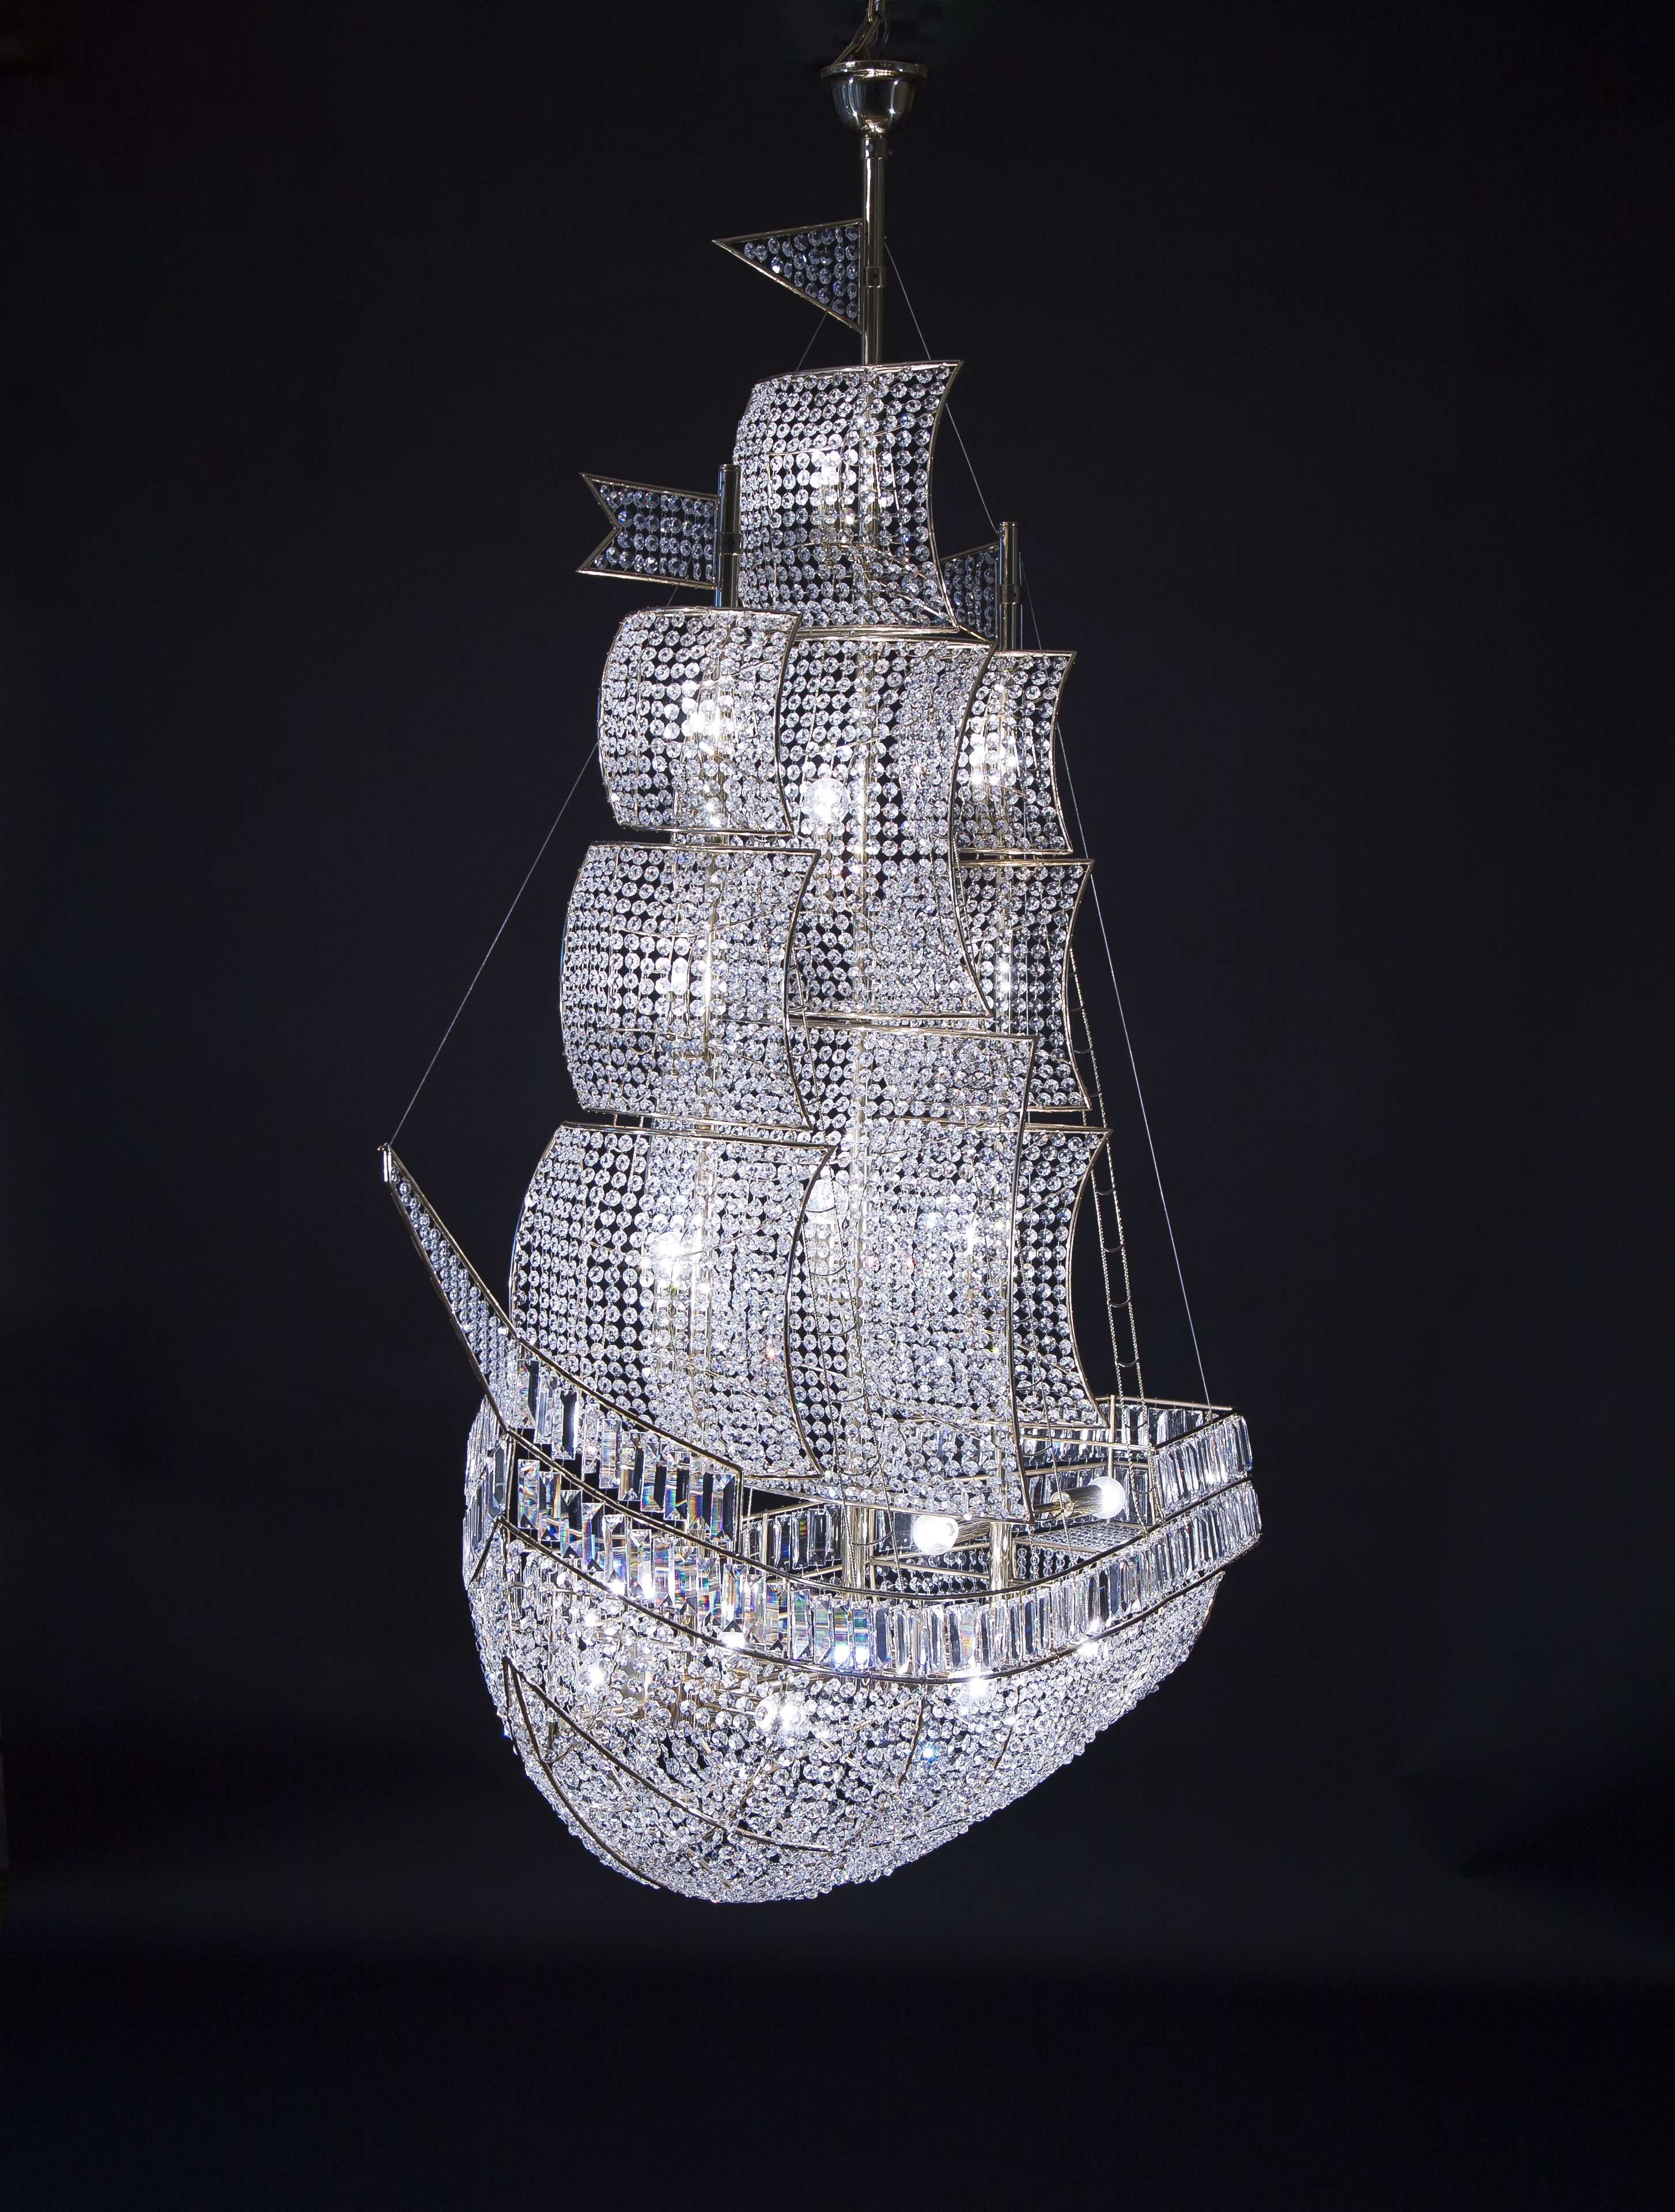 Glamorous chandelier in a form of the sea ship polished brass glamorous chandelier in a form of the sea ship polished brass clear crystals arubaitofo Choice Image